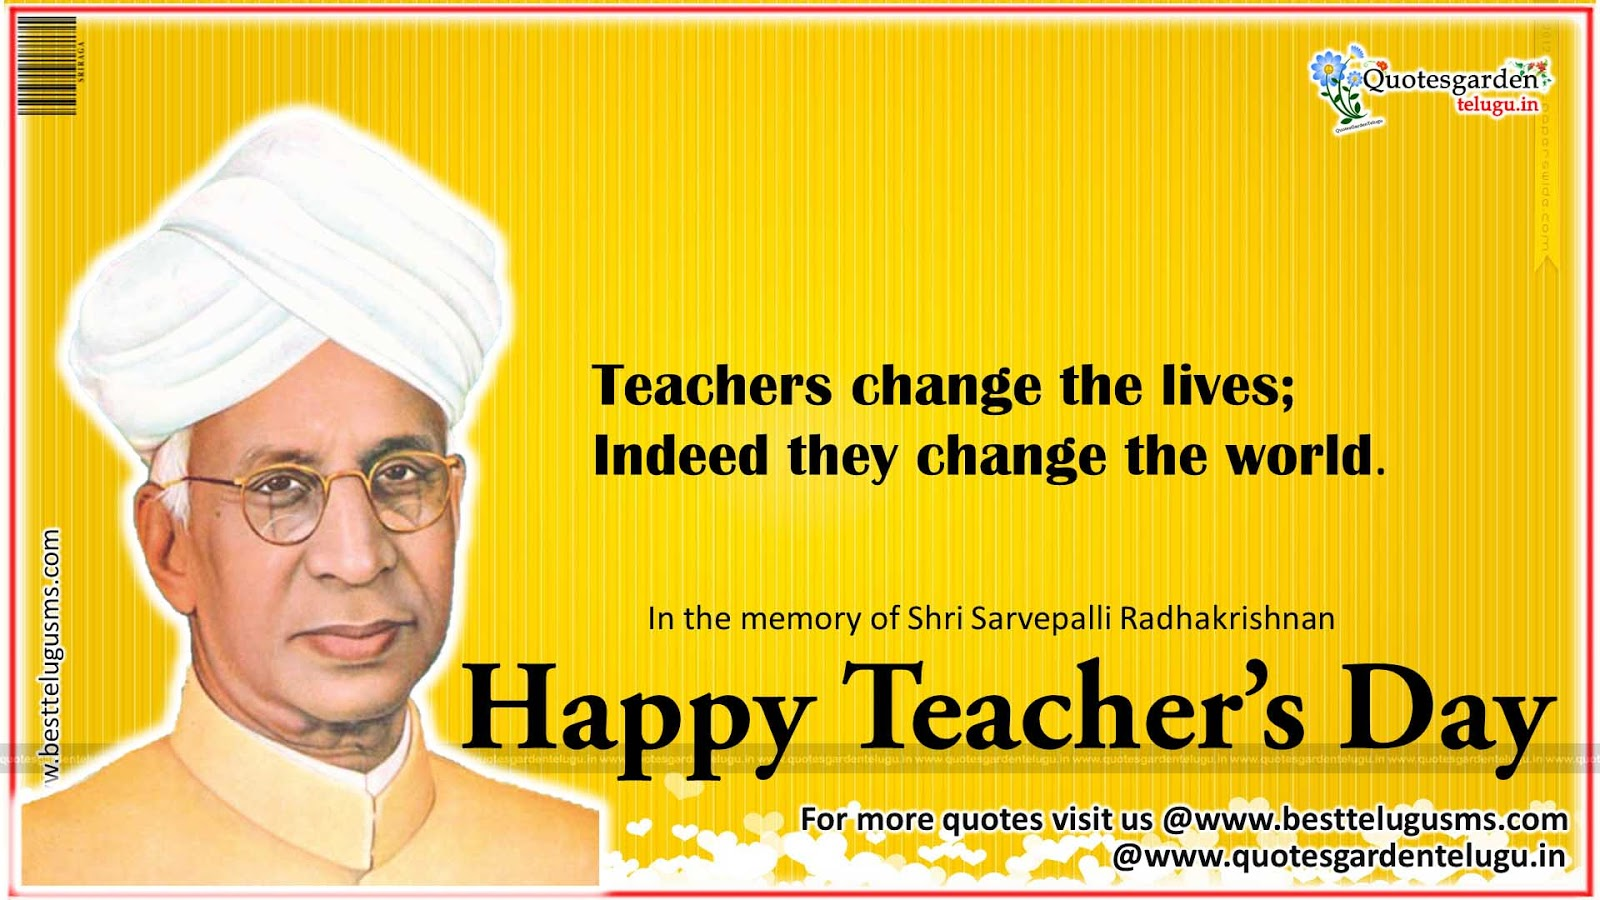 Happy teachers day wishes quotes greetings 2017 quotes garden happy teachers day wishes quotes greetings 2017 kristyandbryce Images